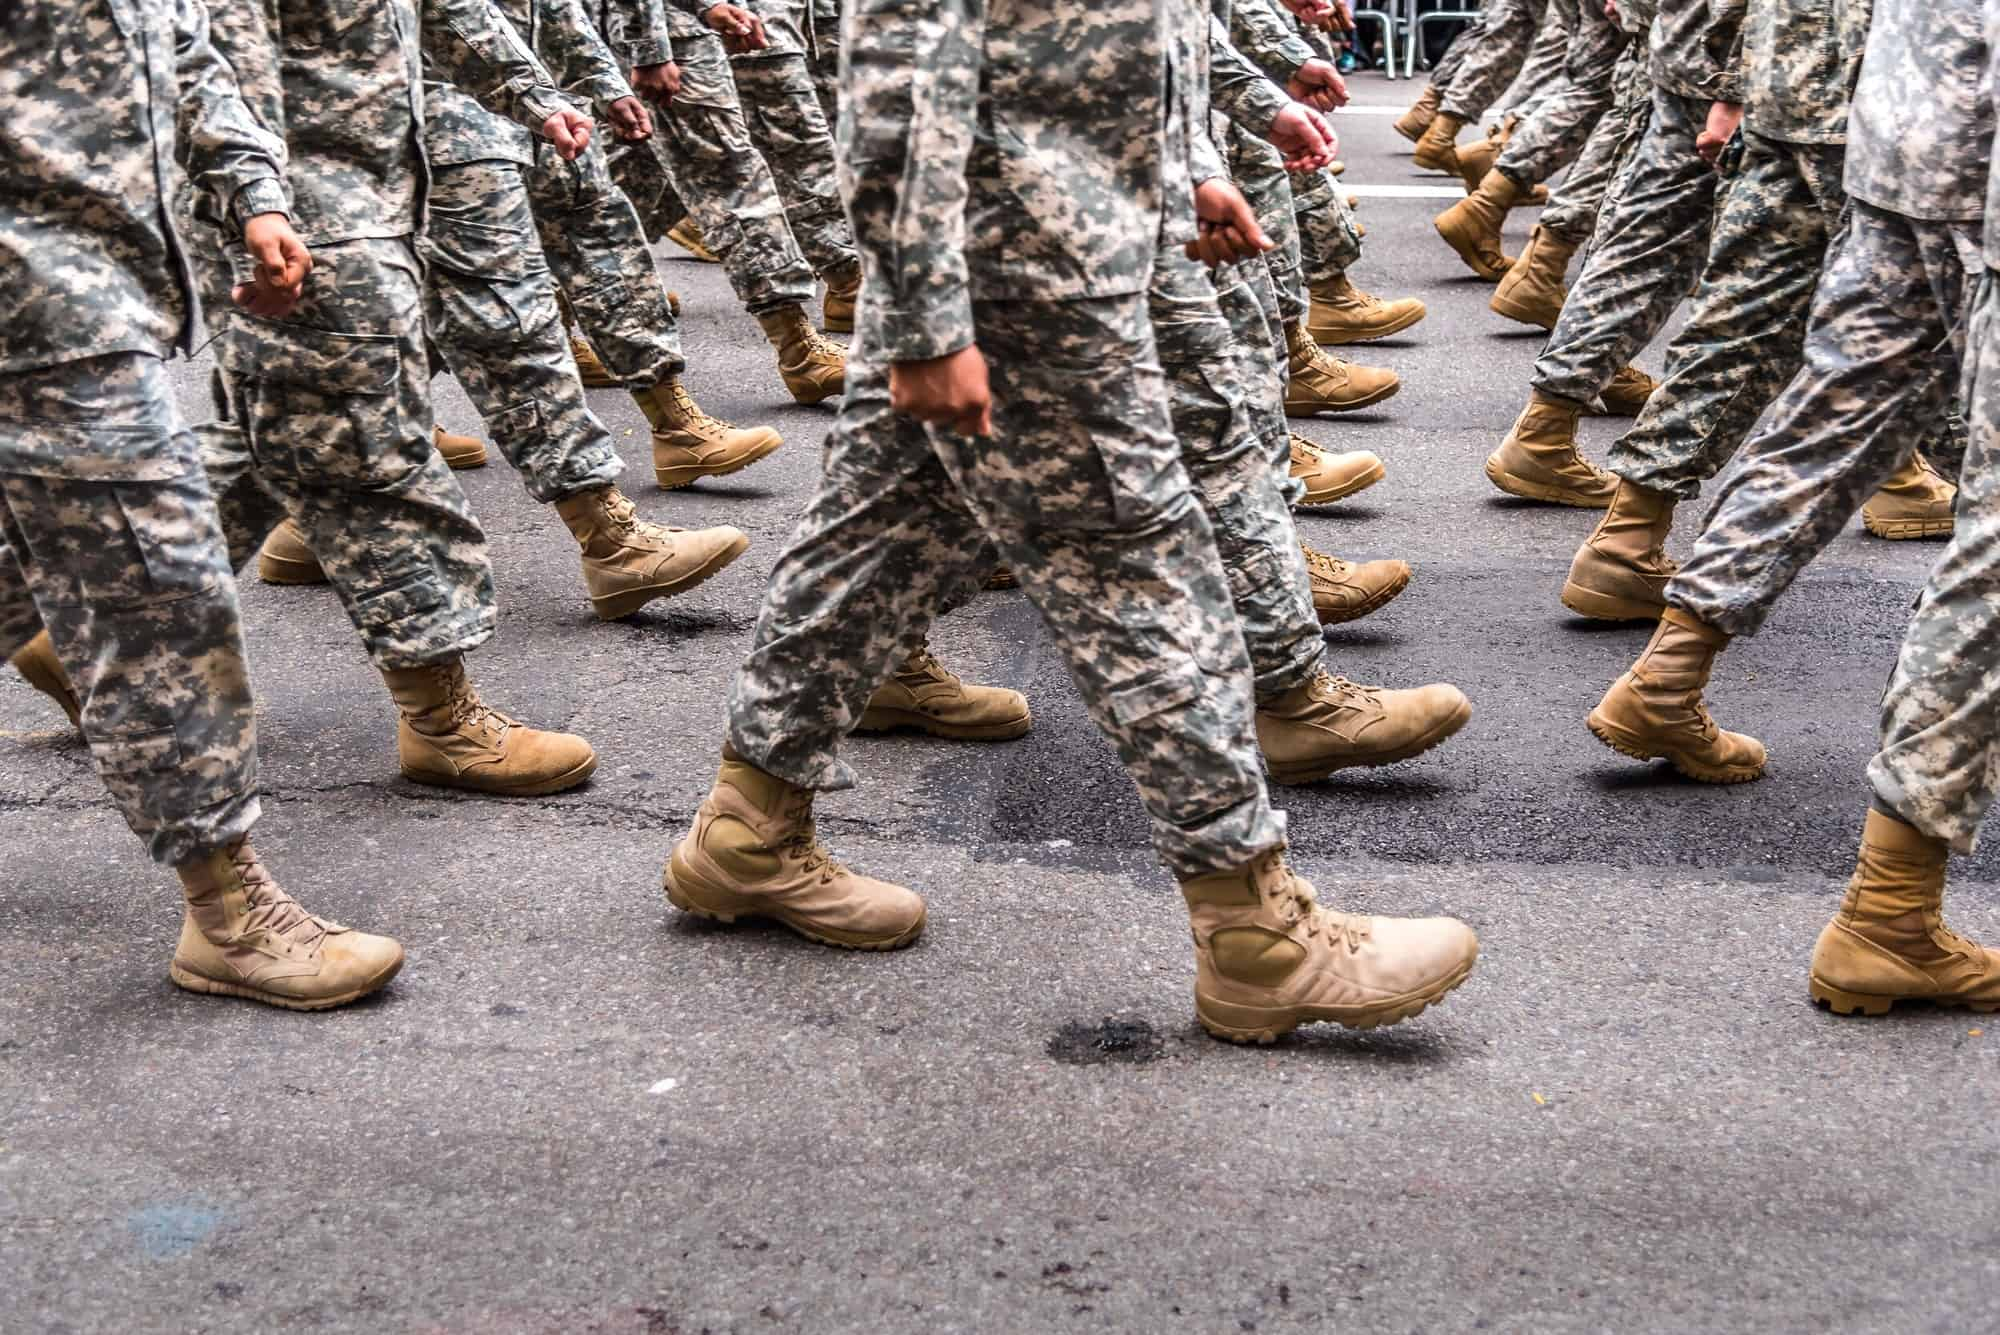 Army marching in New York.